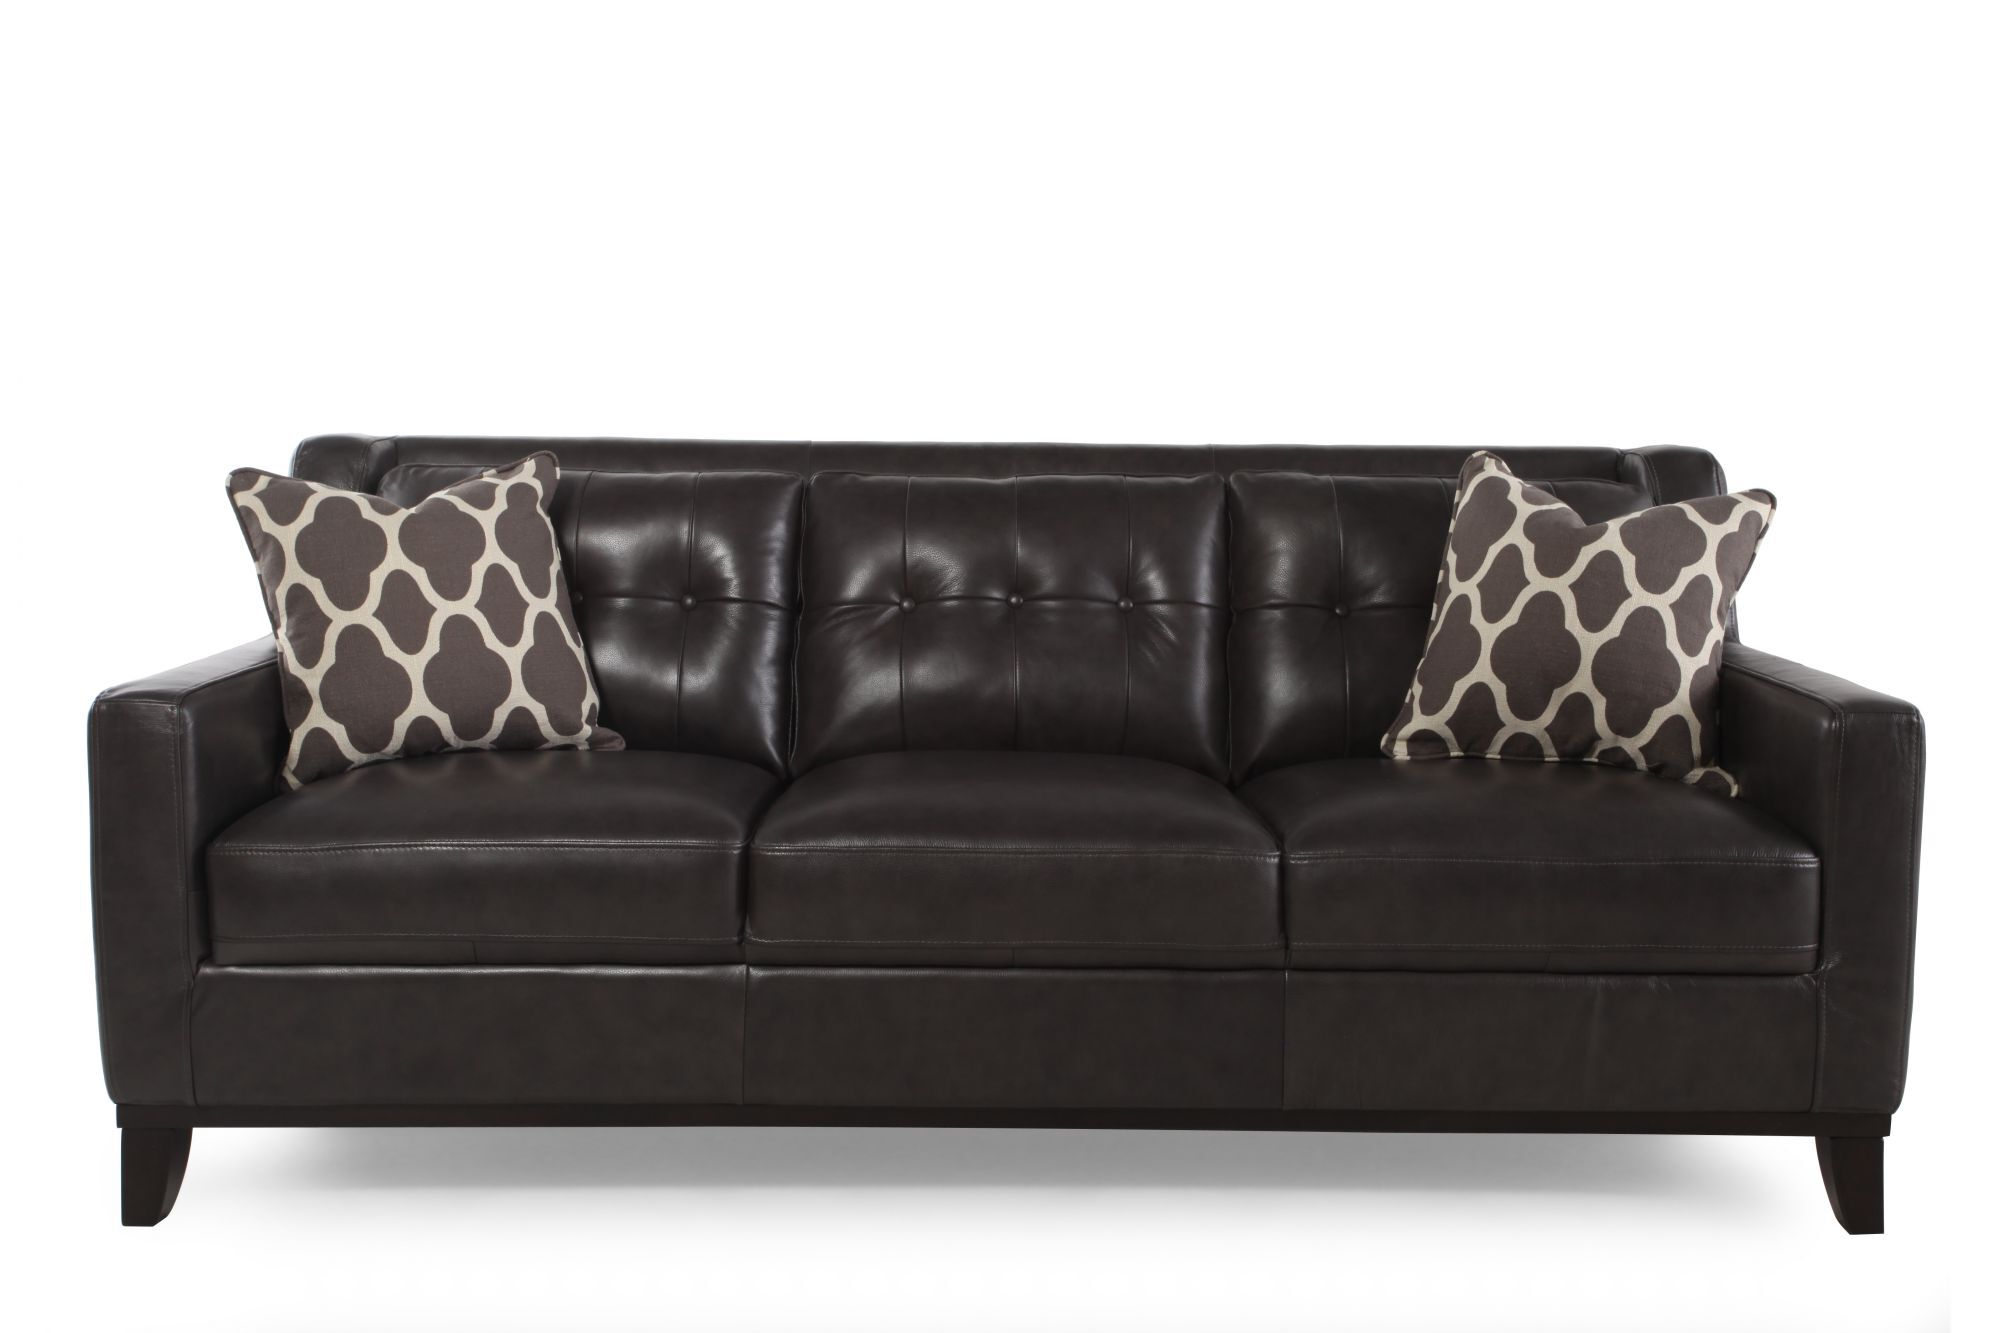 gray leather sofa images small designer bed boulevard grey mathis brothers furniture